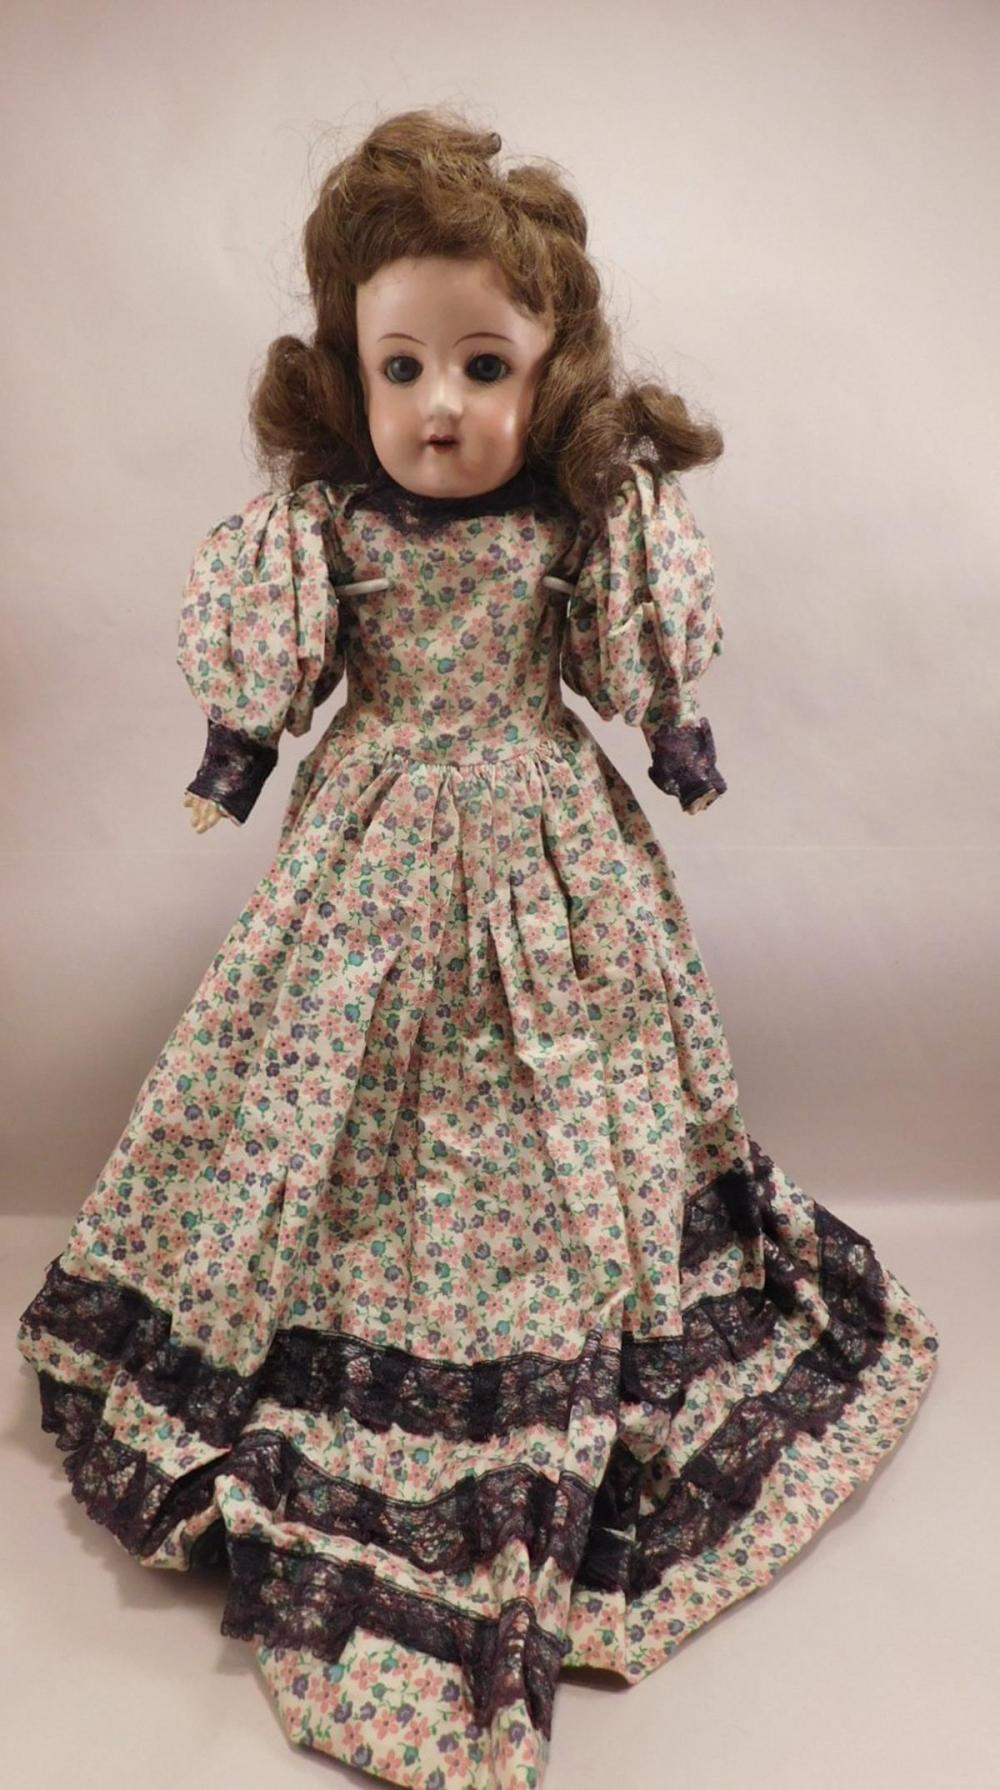 GOEBEL GERMANY CHILD DOLL VINTAGE ANTIQUE